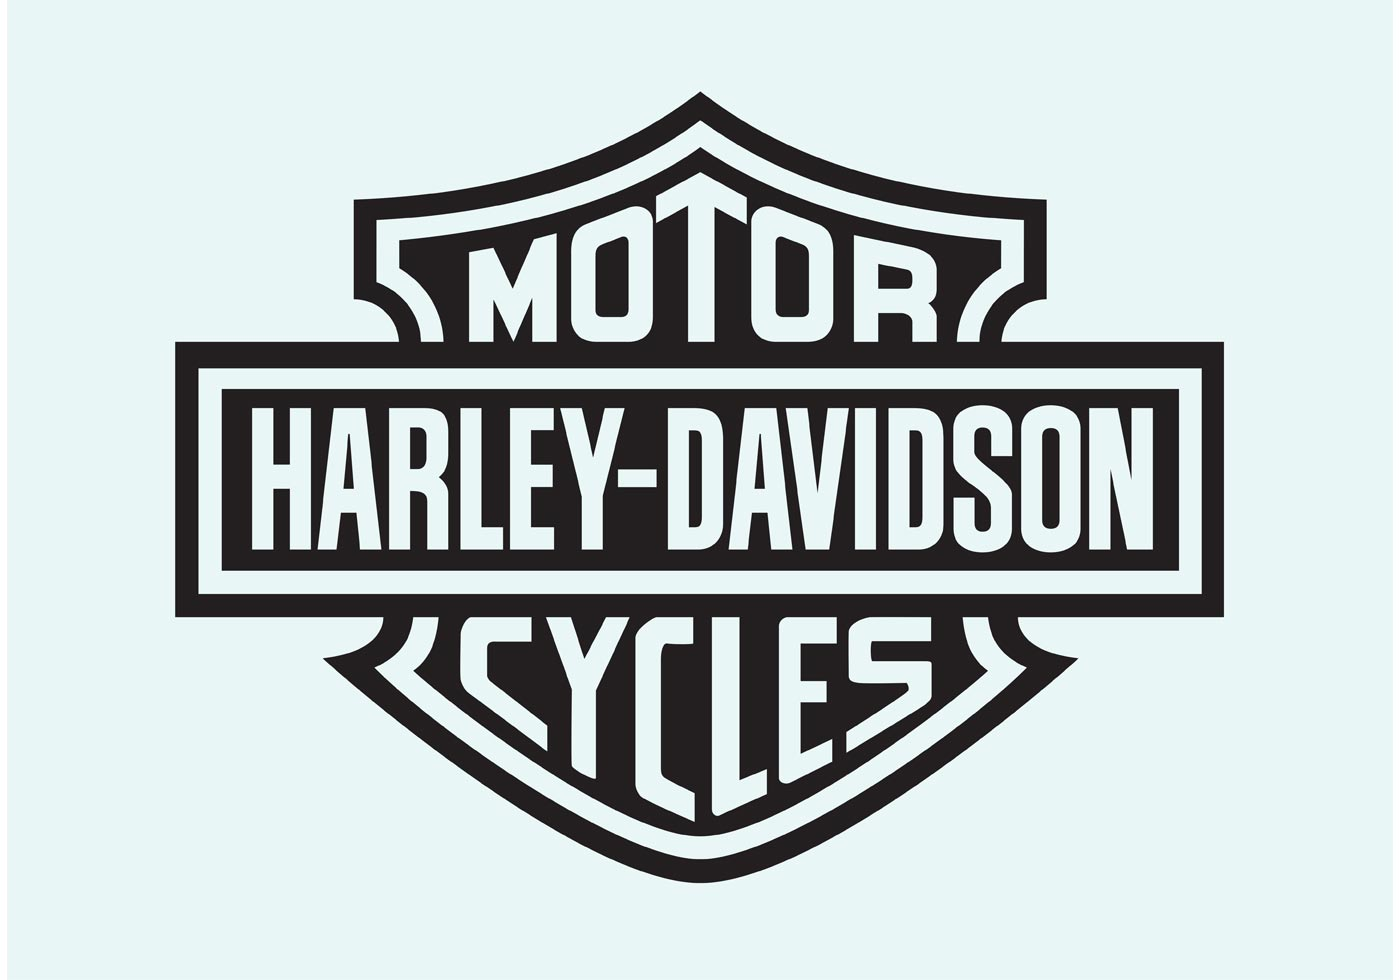 photograph about Printable Harley Davidson Logo identified as Harley Davidson Motorbike Cost-free Vector Artwork - (7 Absolutely free Downloads)